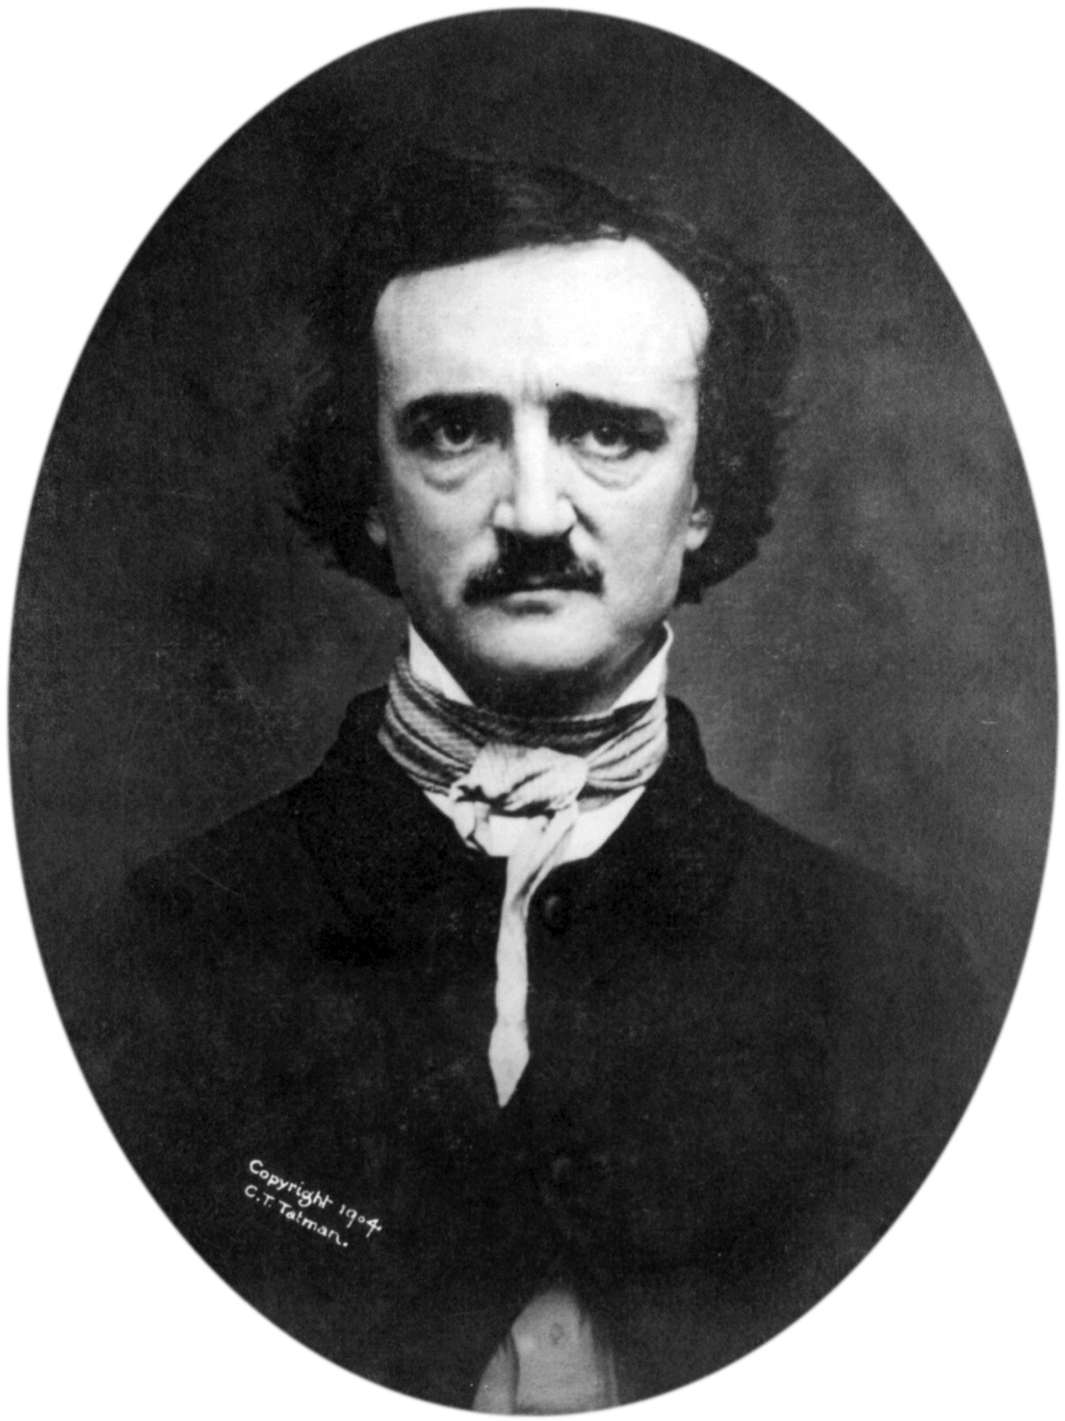 http://en.wikipedia.org/wiki/File:Edgar_Allan_Poe_2_retouched_and_transparent_bg.png